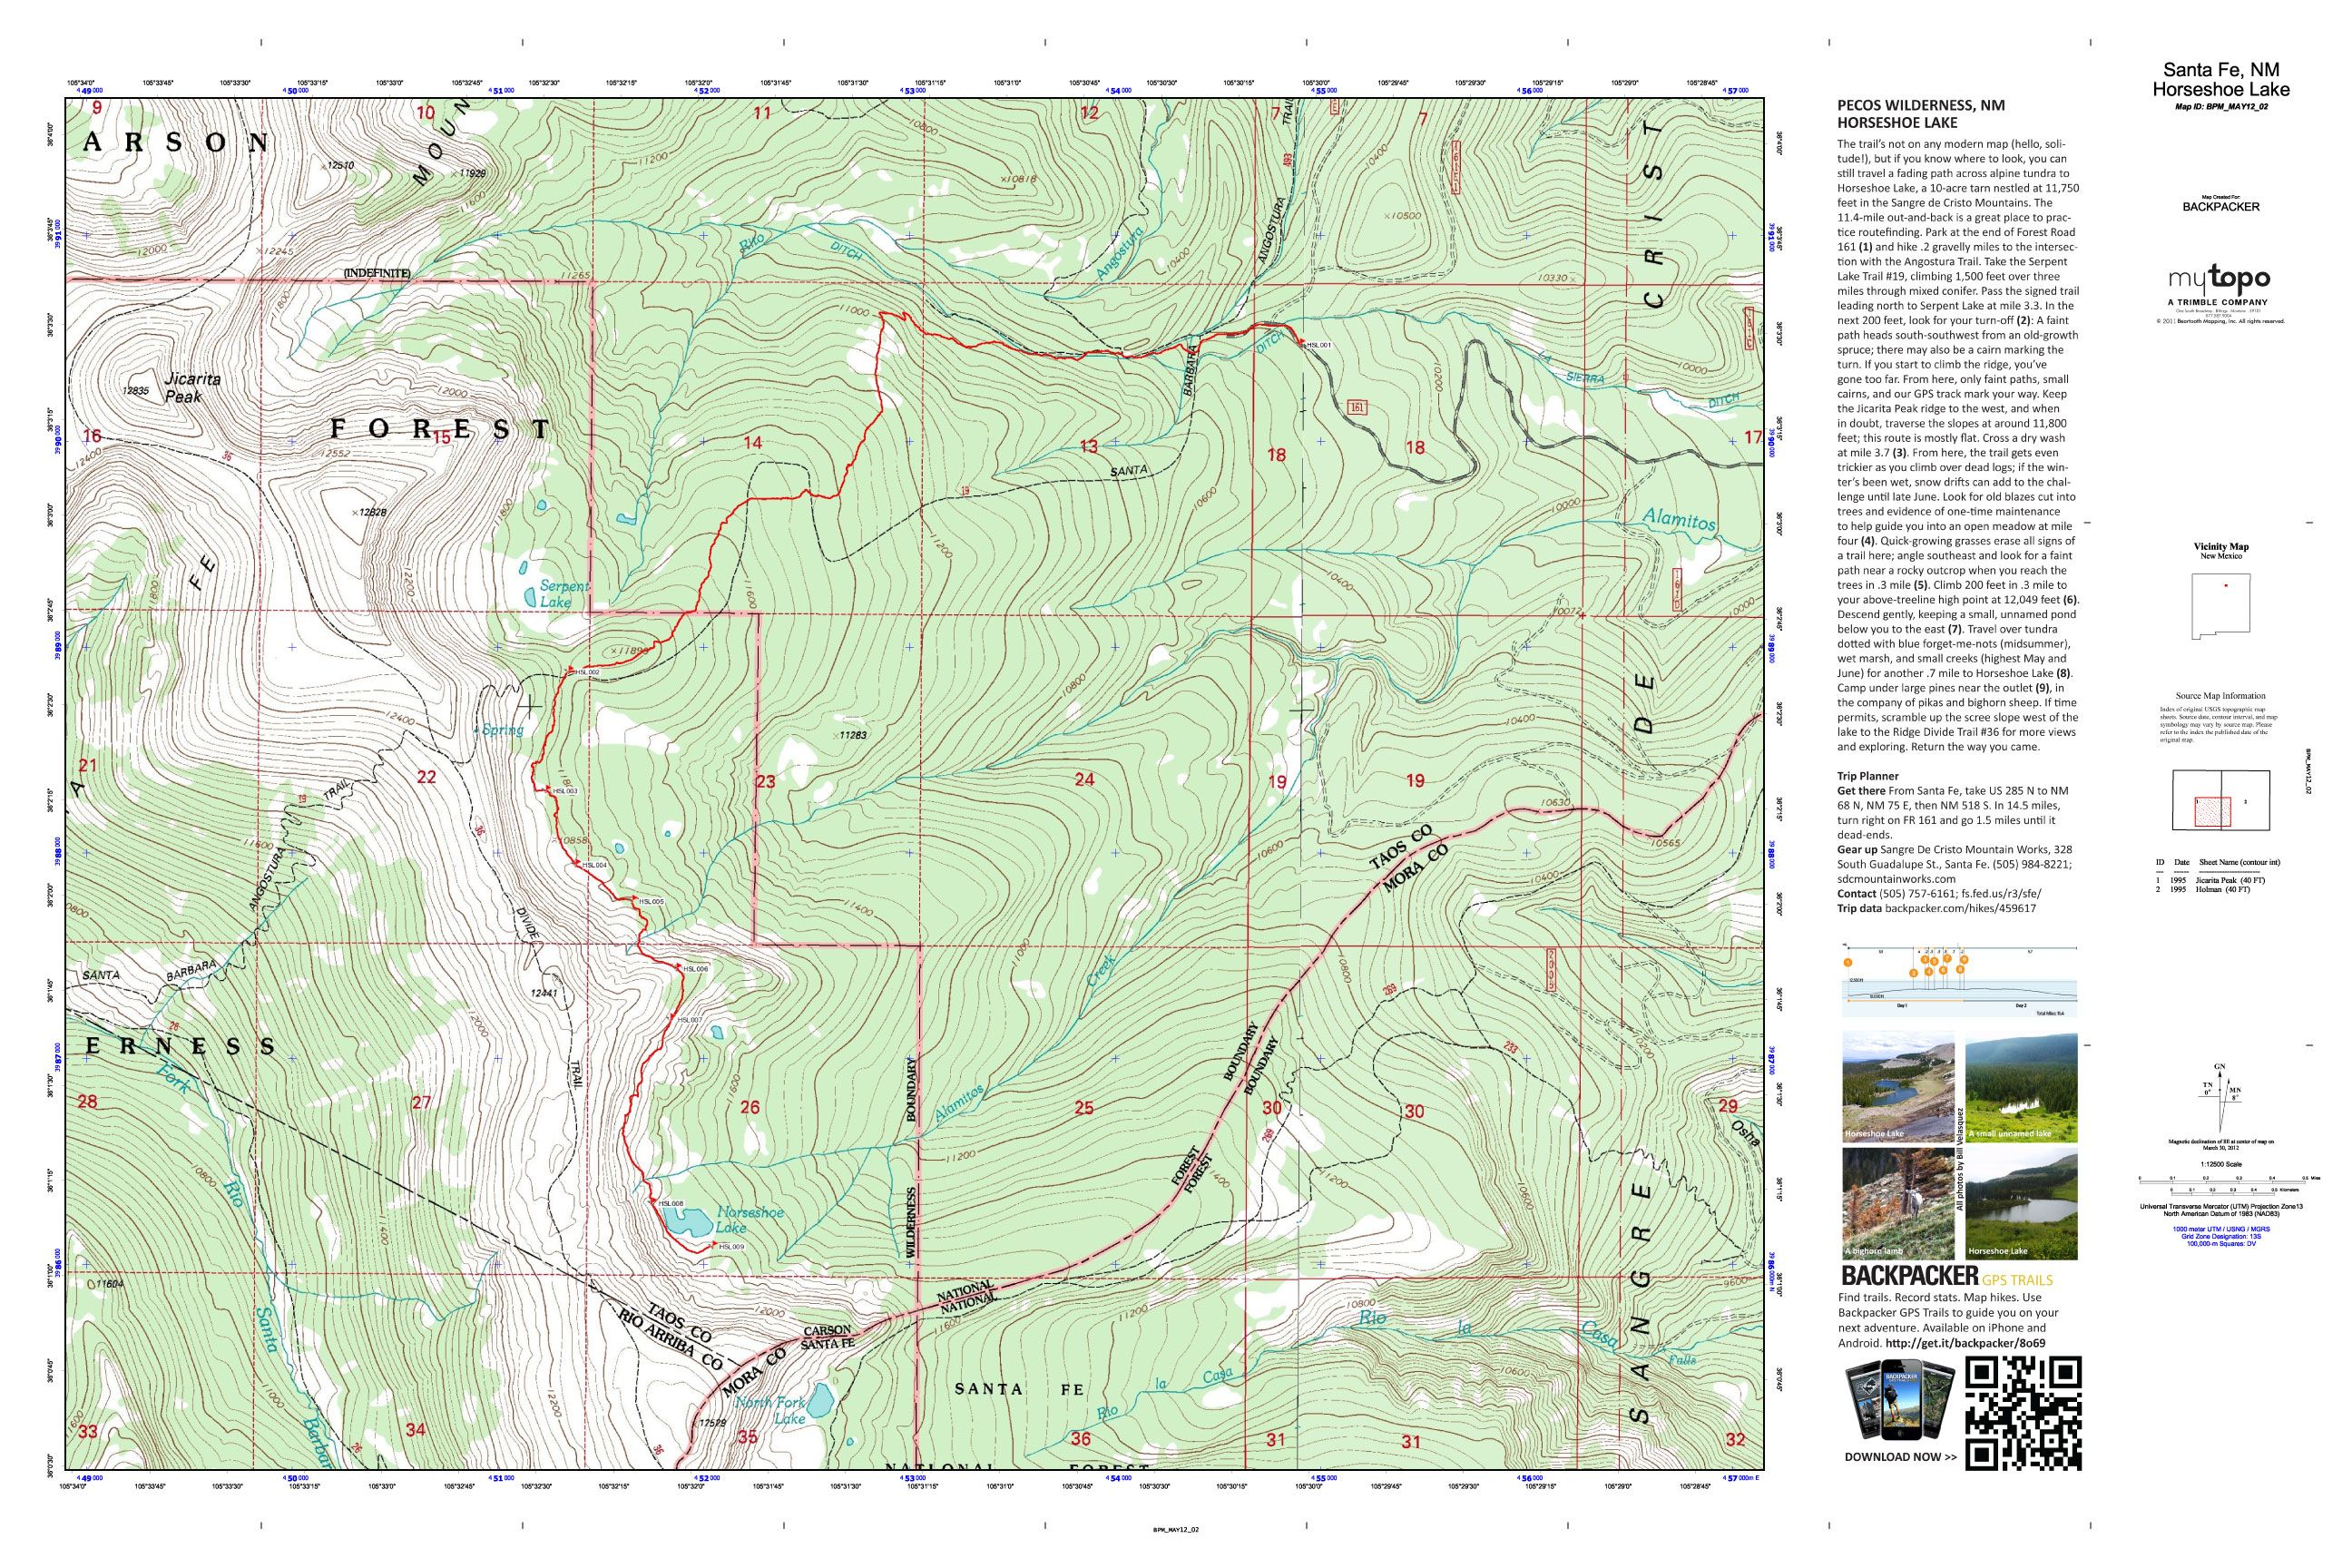 MyTopo Custom Topo Maps Aerial Photos Online Maps And Map - Topo maps online